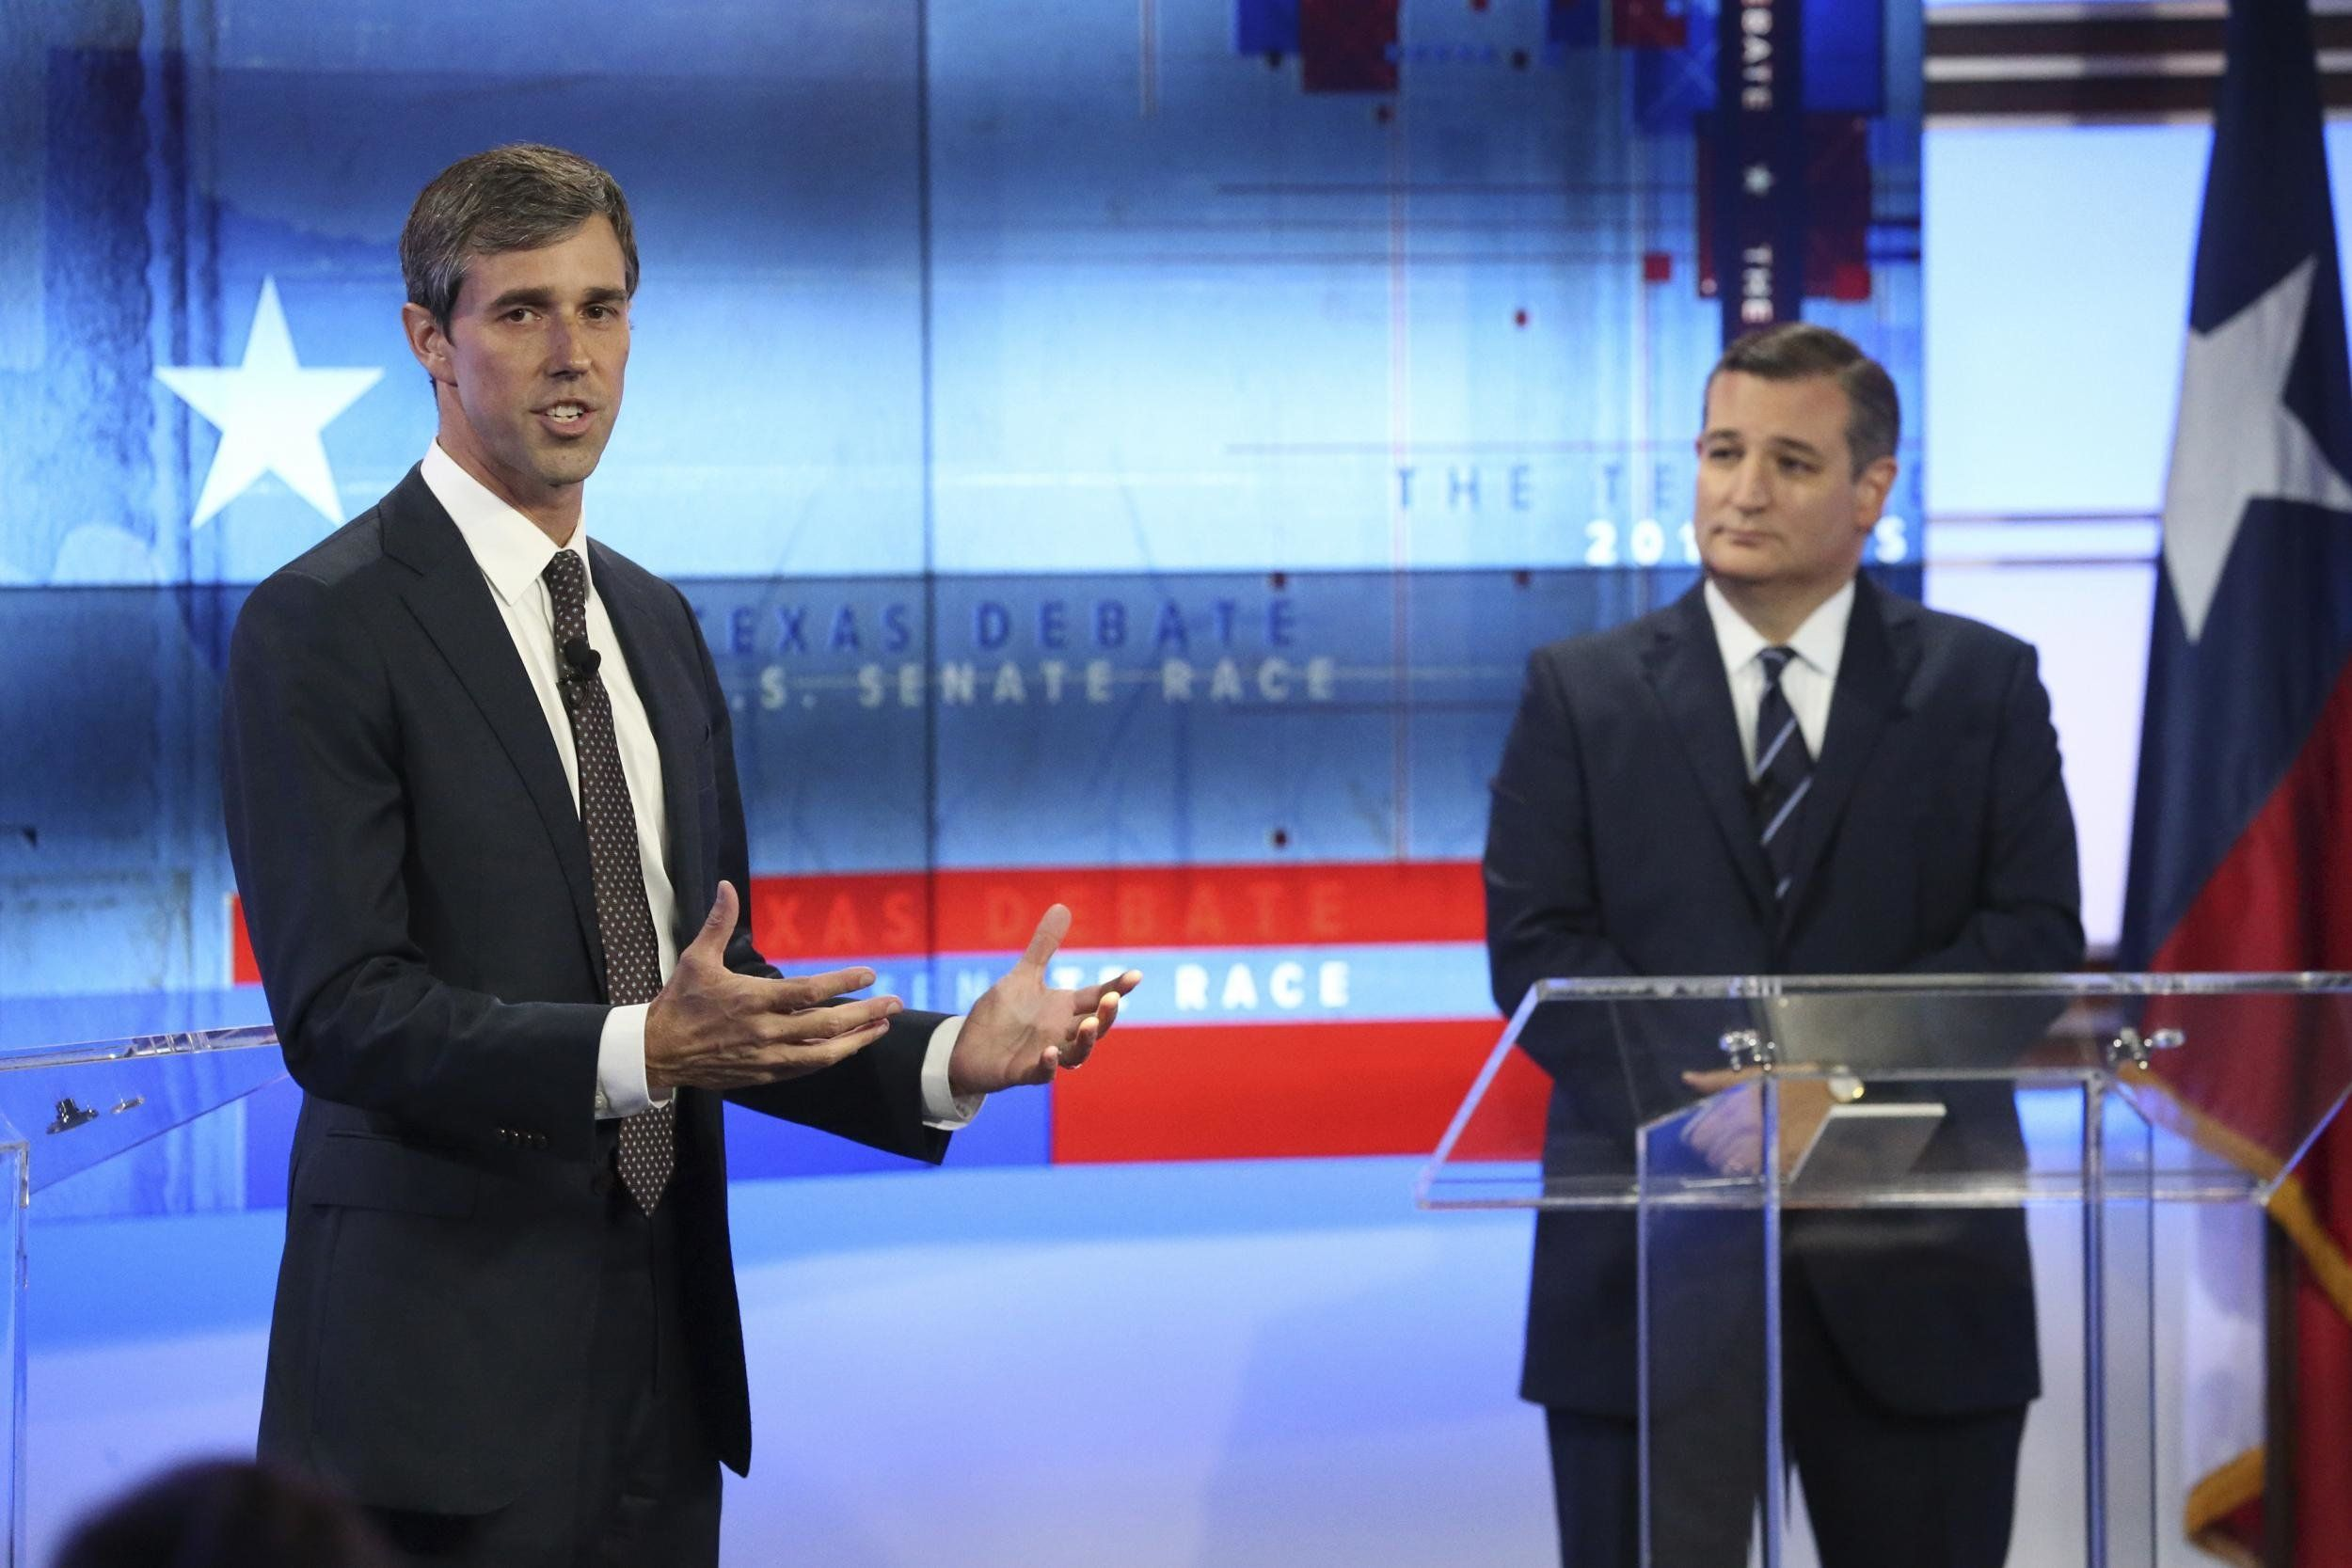 Ted Cruz-Beto O'Rourke debate: Texas candidates spar in heated final battle before midterms